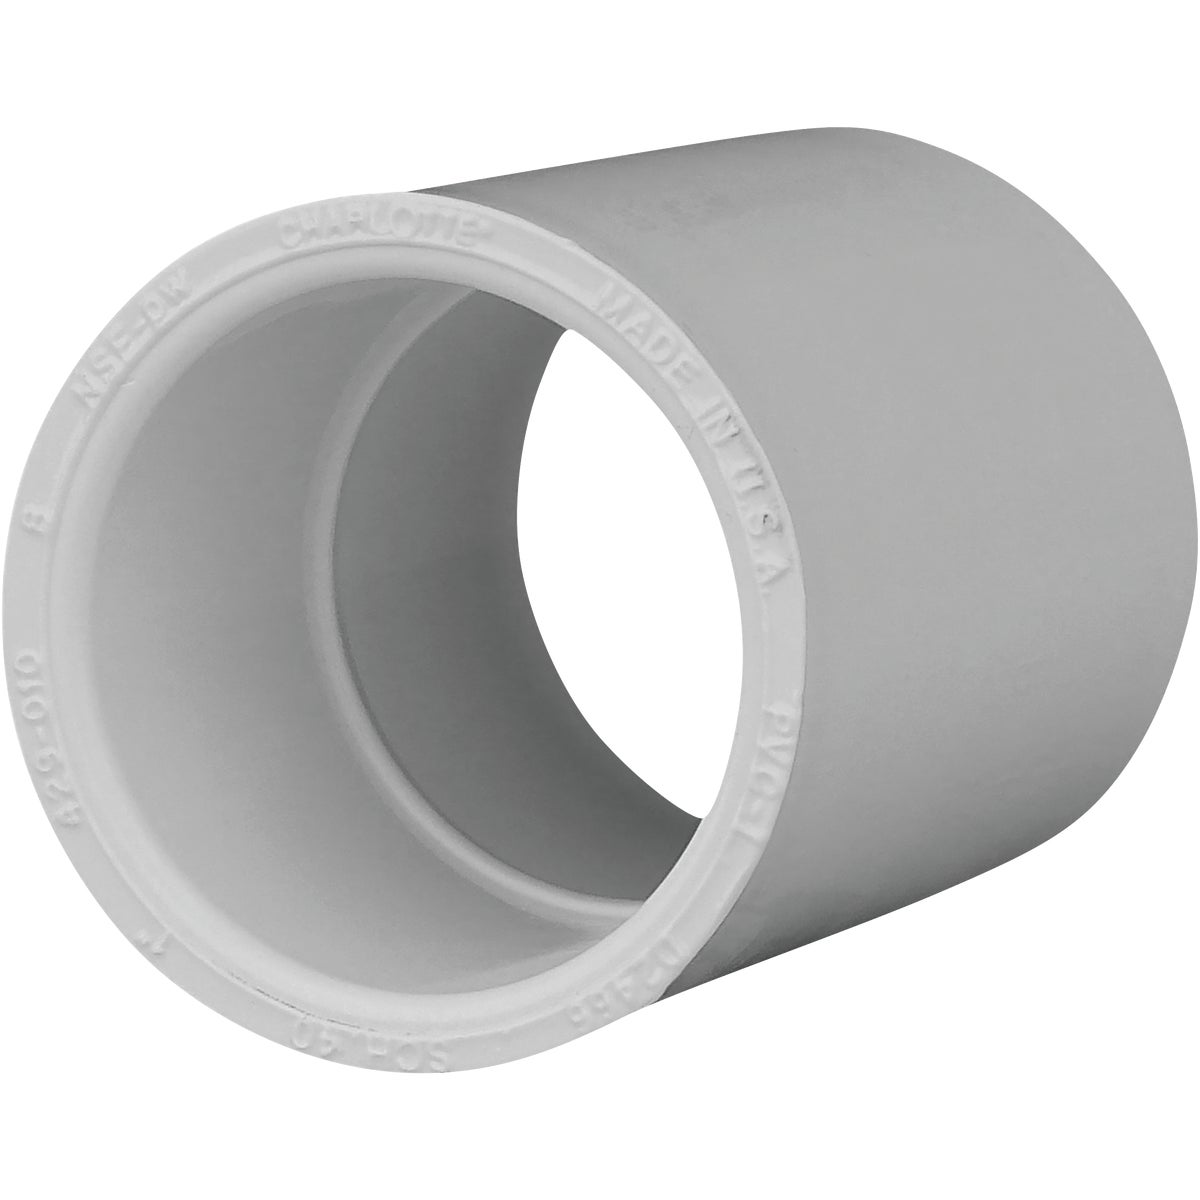 "1"" SCH40 PVC COUPLING - 30110 by Genova Inc"